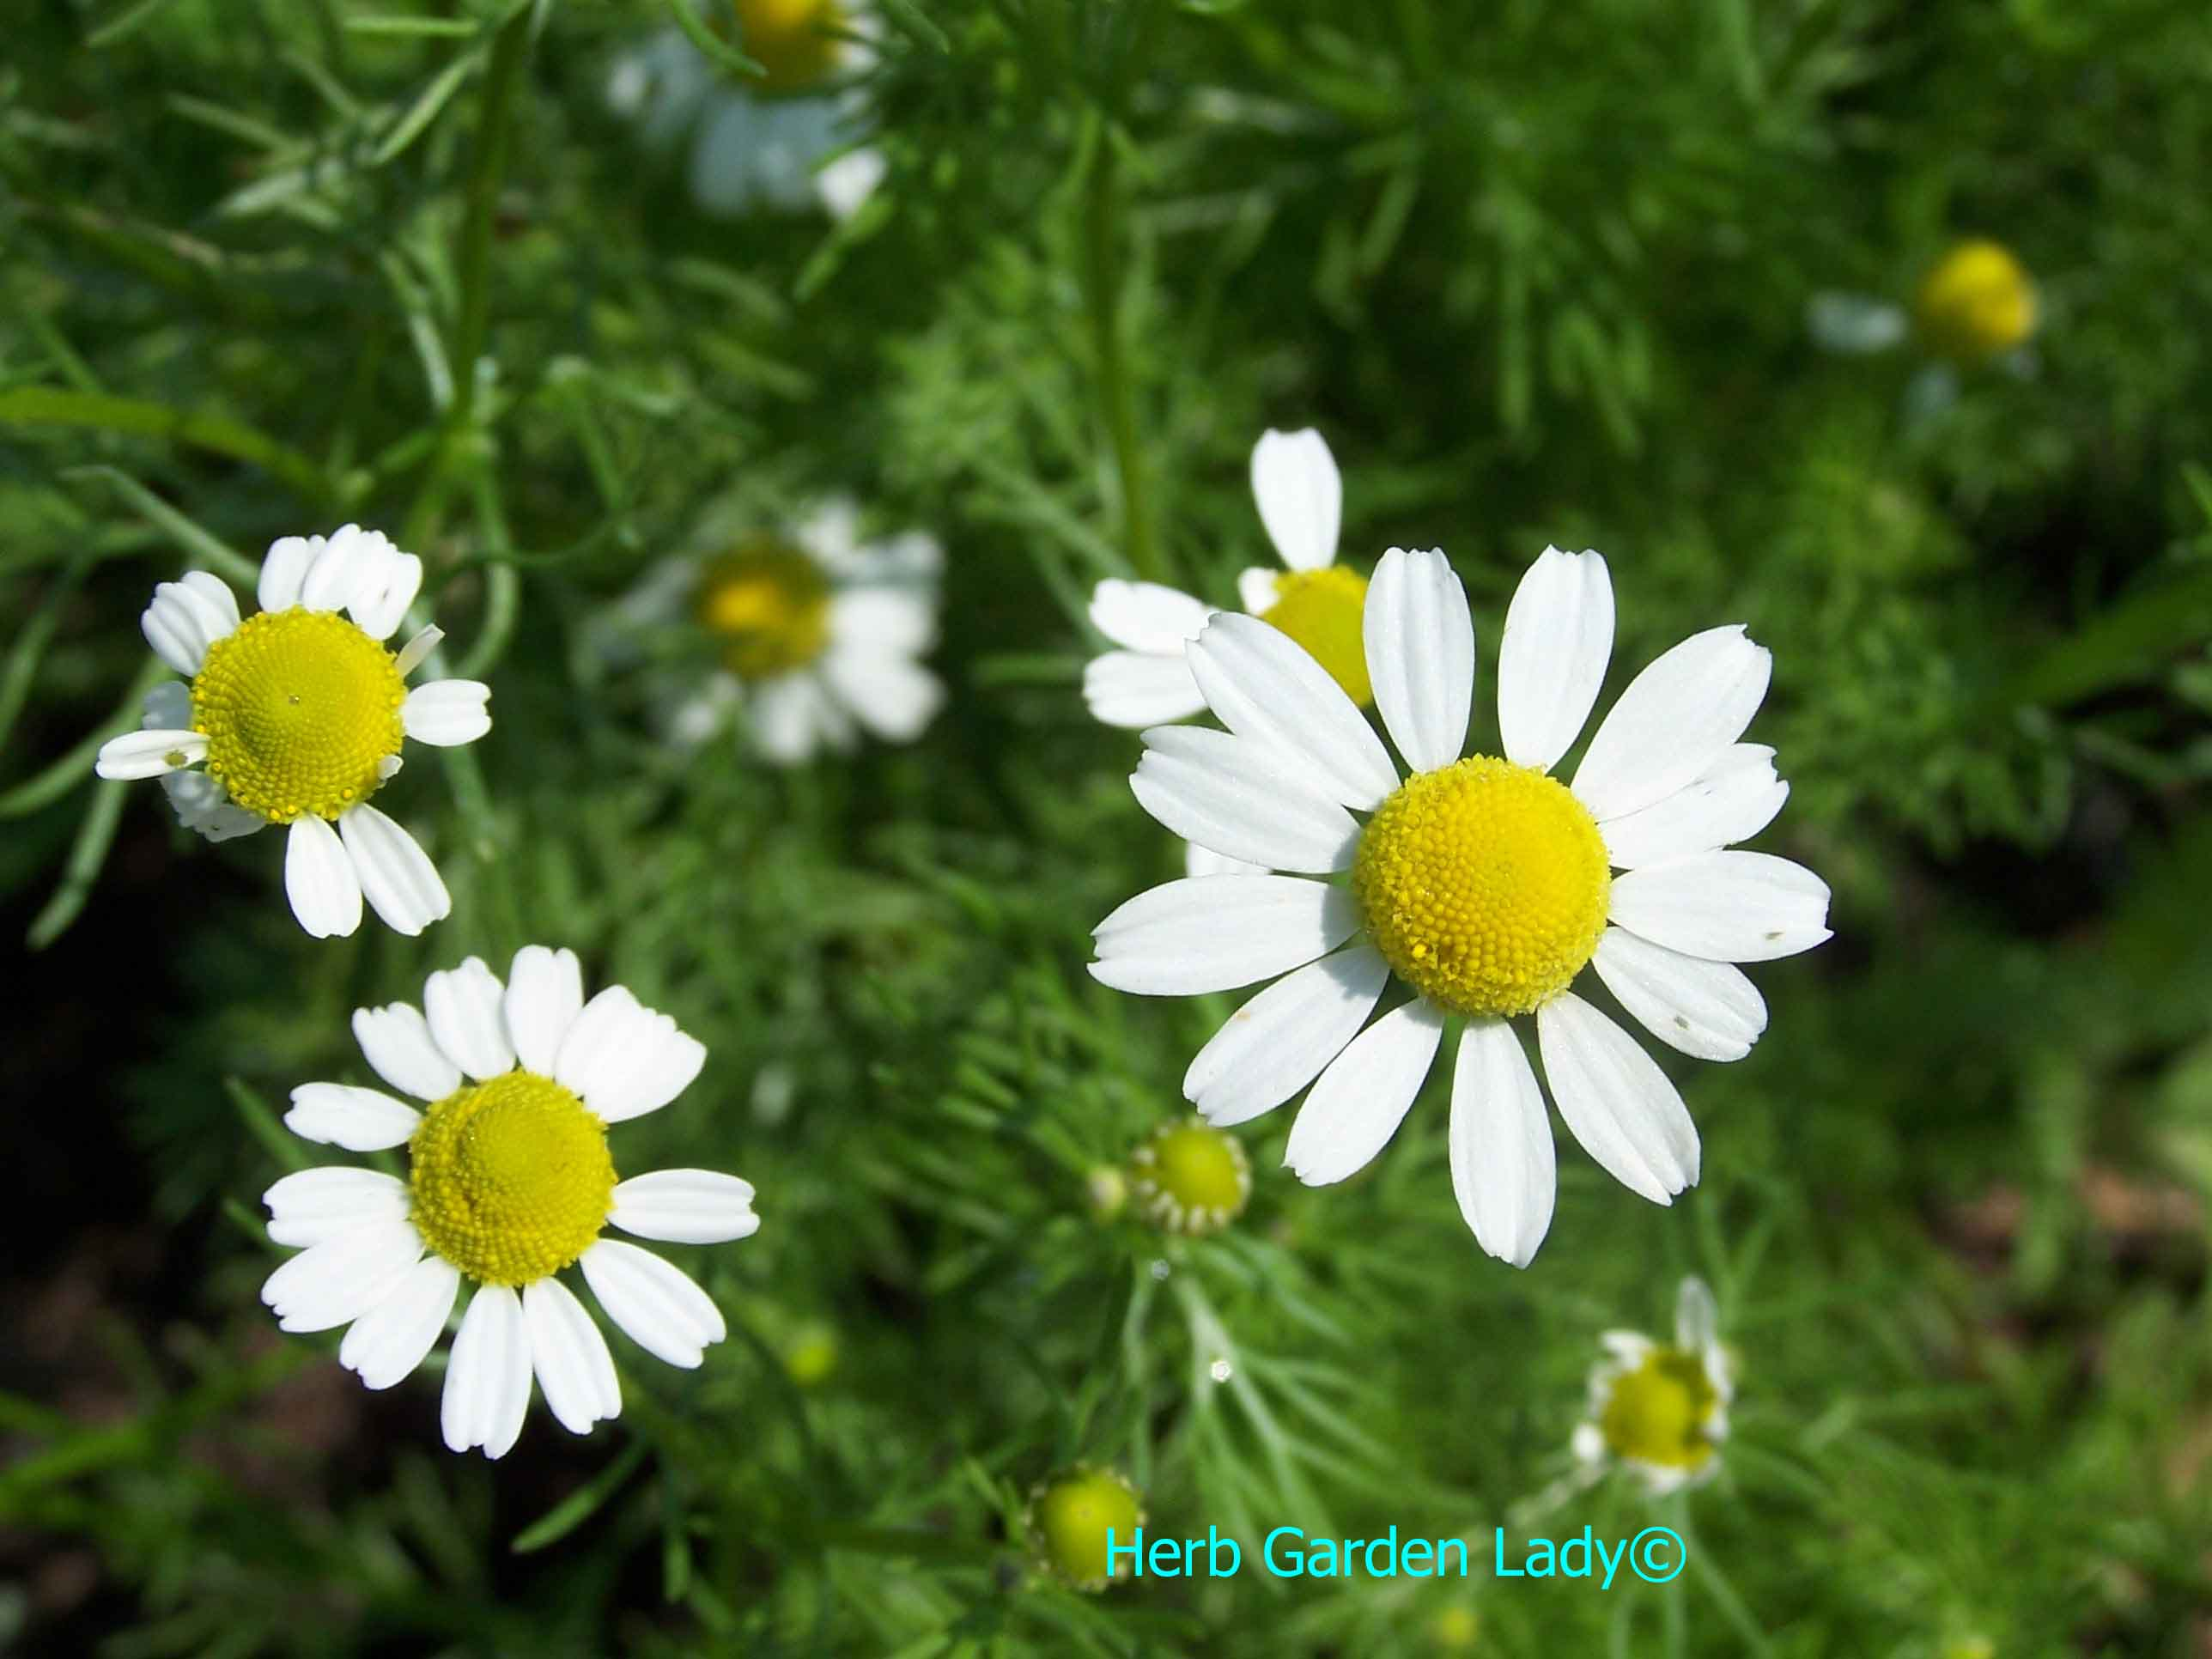 Chamomile herb used in aromatherapy is excellent for depression, diarrhea, digestion, menstrual and your skin.